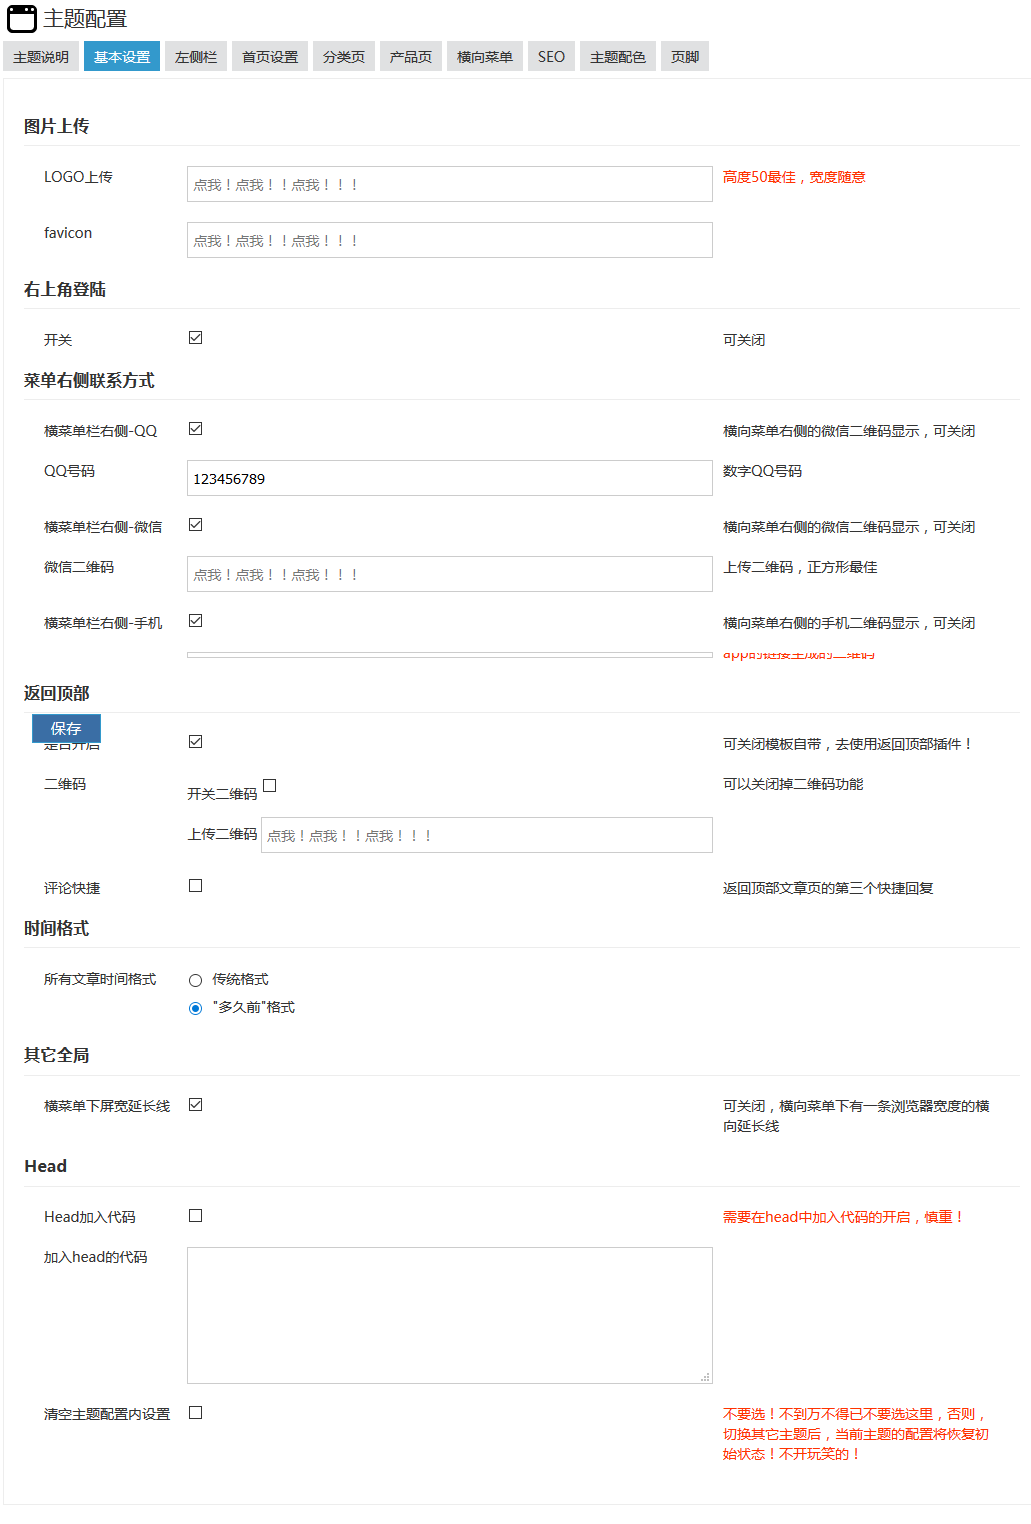 zblogPHP模板 - 产品展示销售CMS/淘宝客(ID:ydproduct) zblogPHP模板 第8张